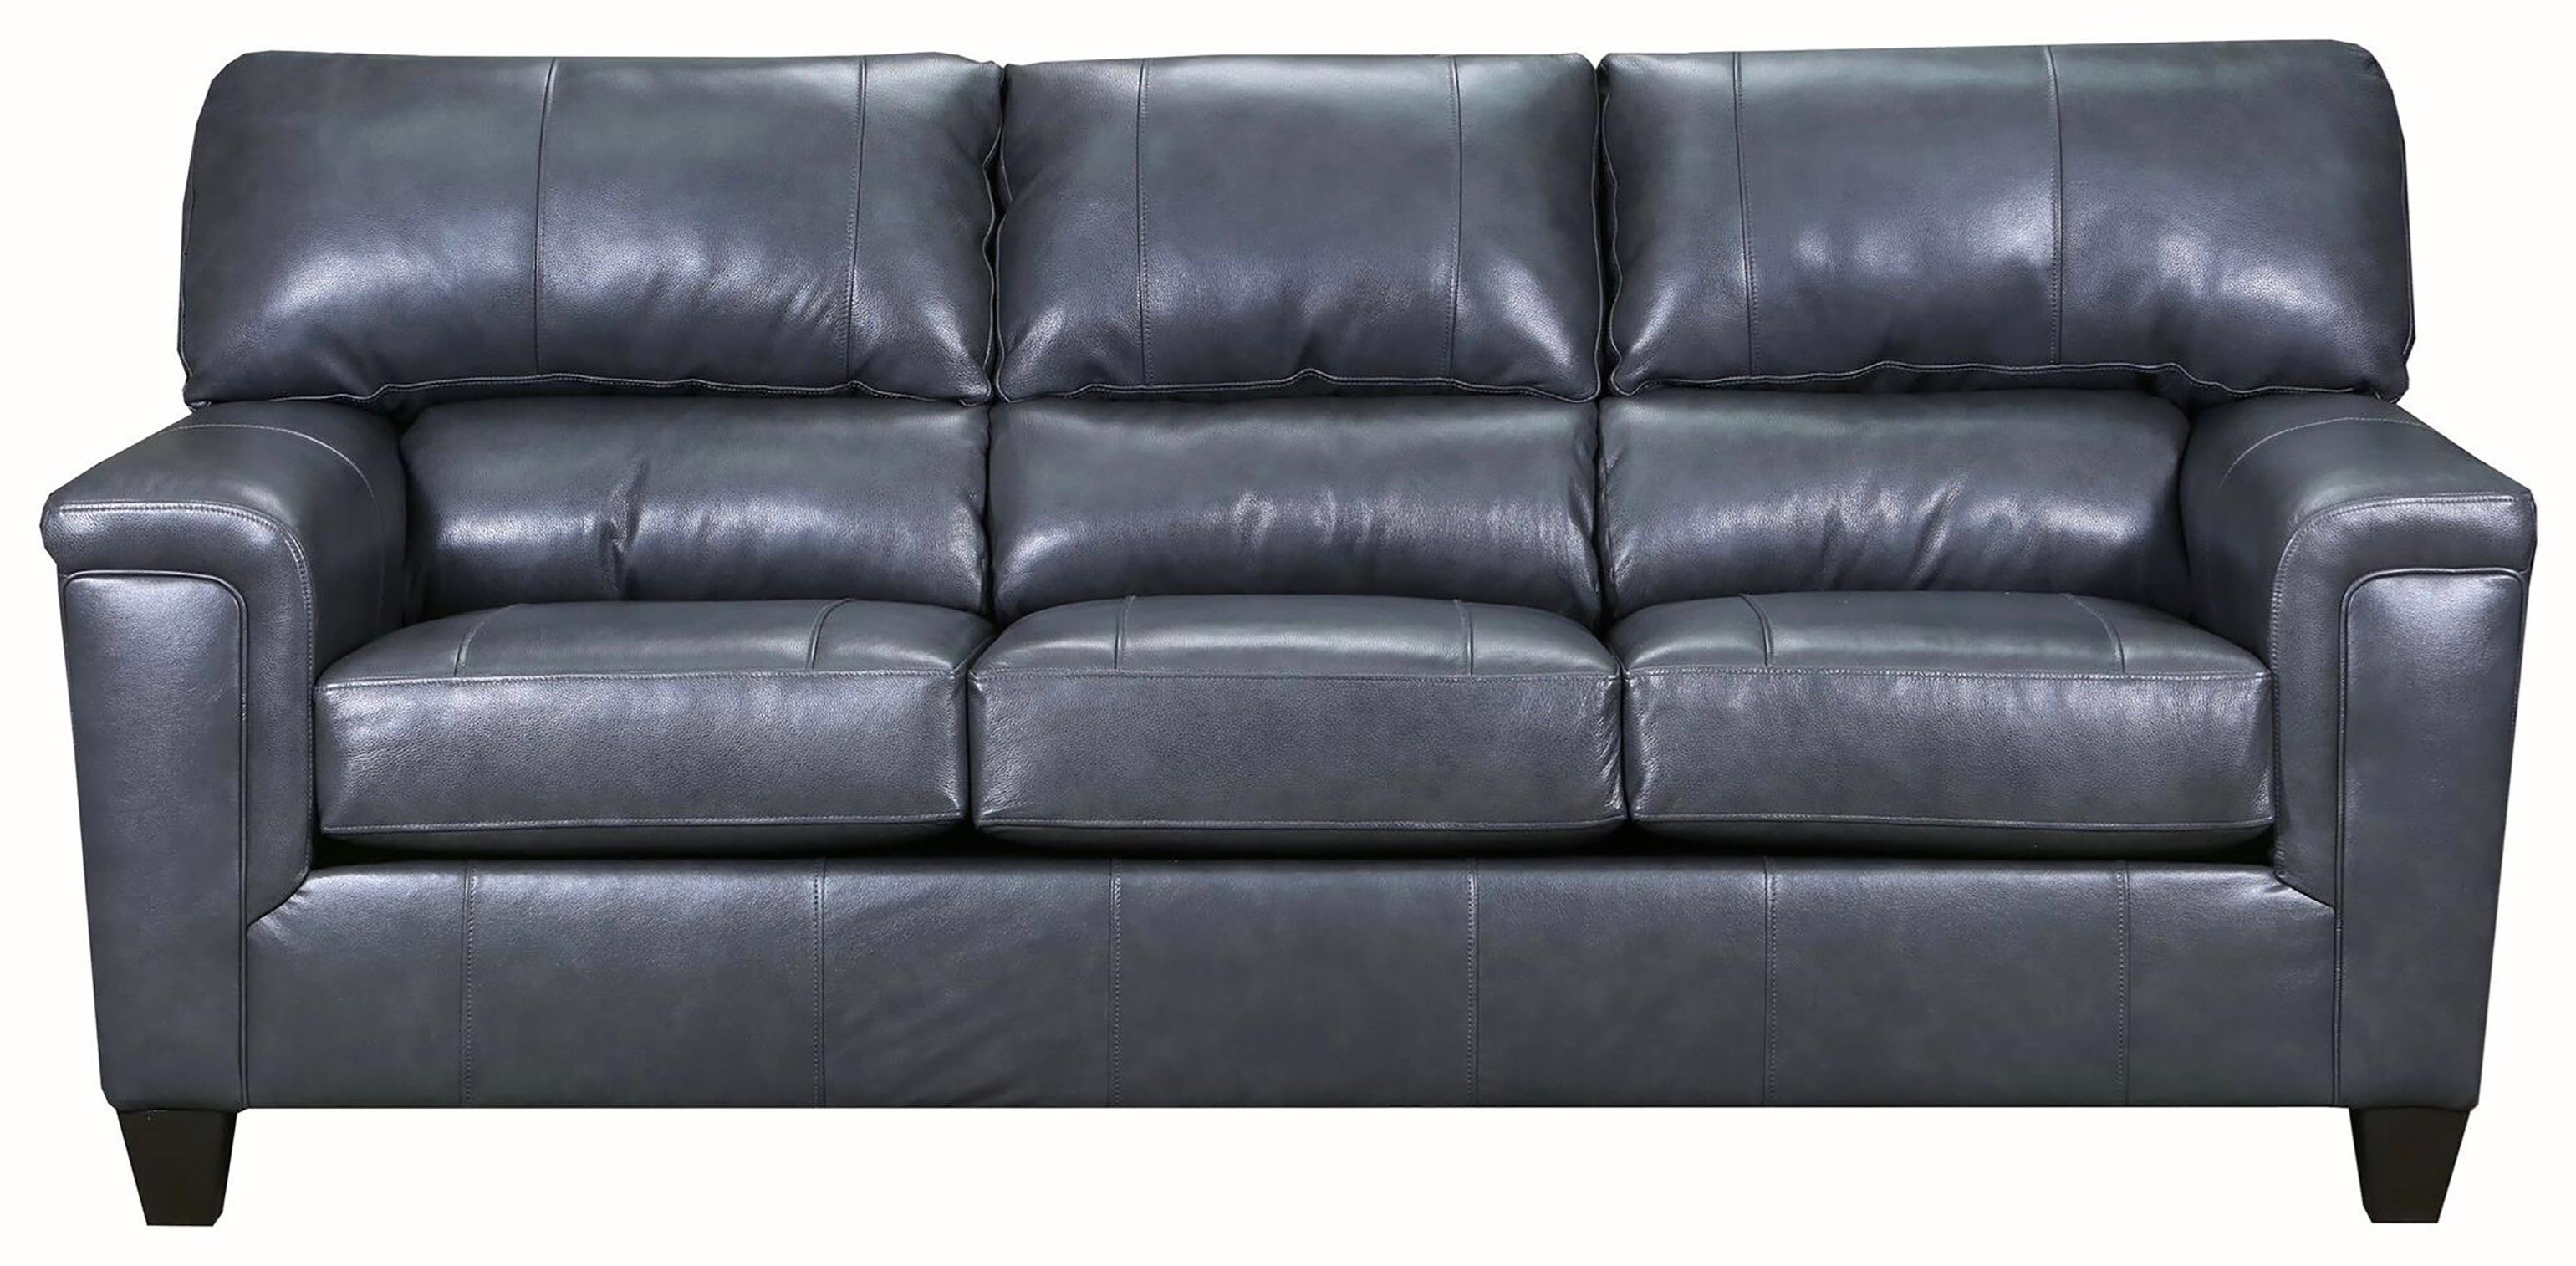 Wondrous Birch Creek Gray Fog Leather Sofa By Lane Home Furnishings At Royal Furniture Beutiful Home Inspiration Truamahrainfo